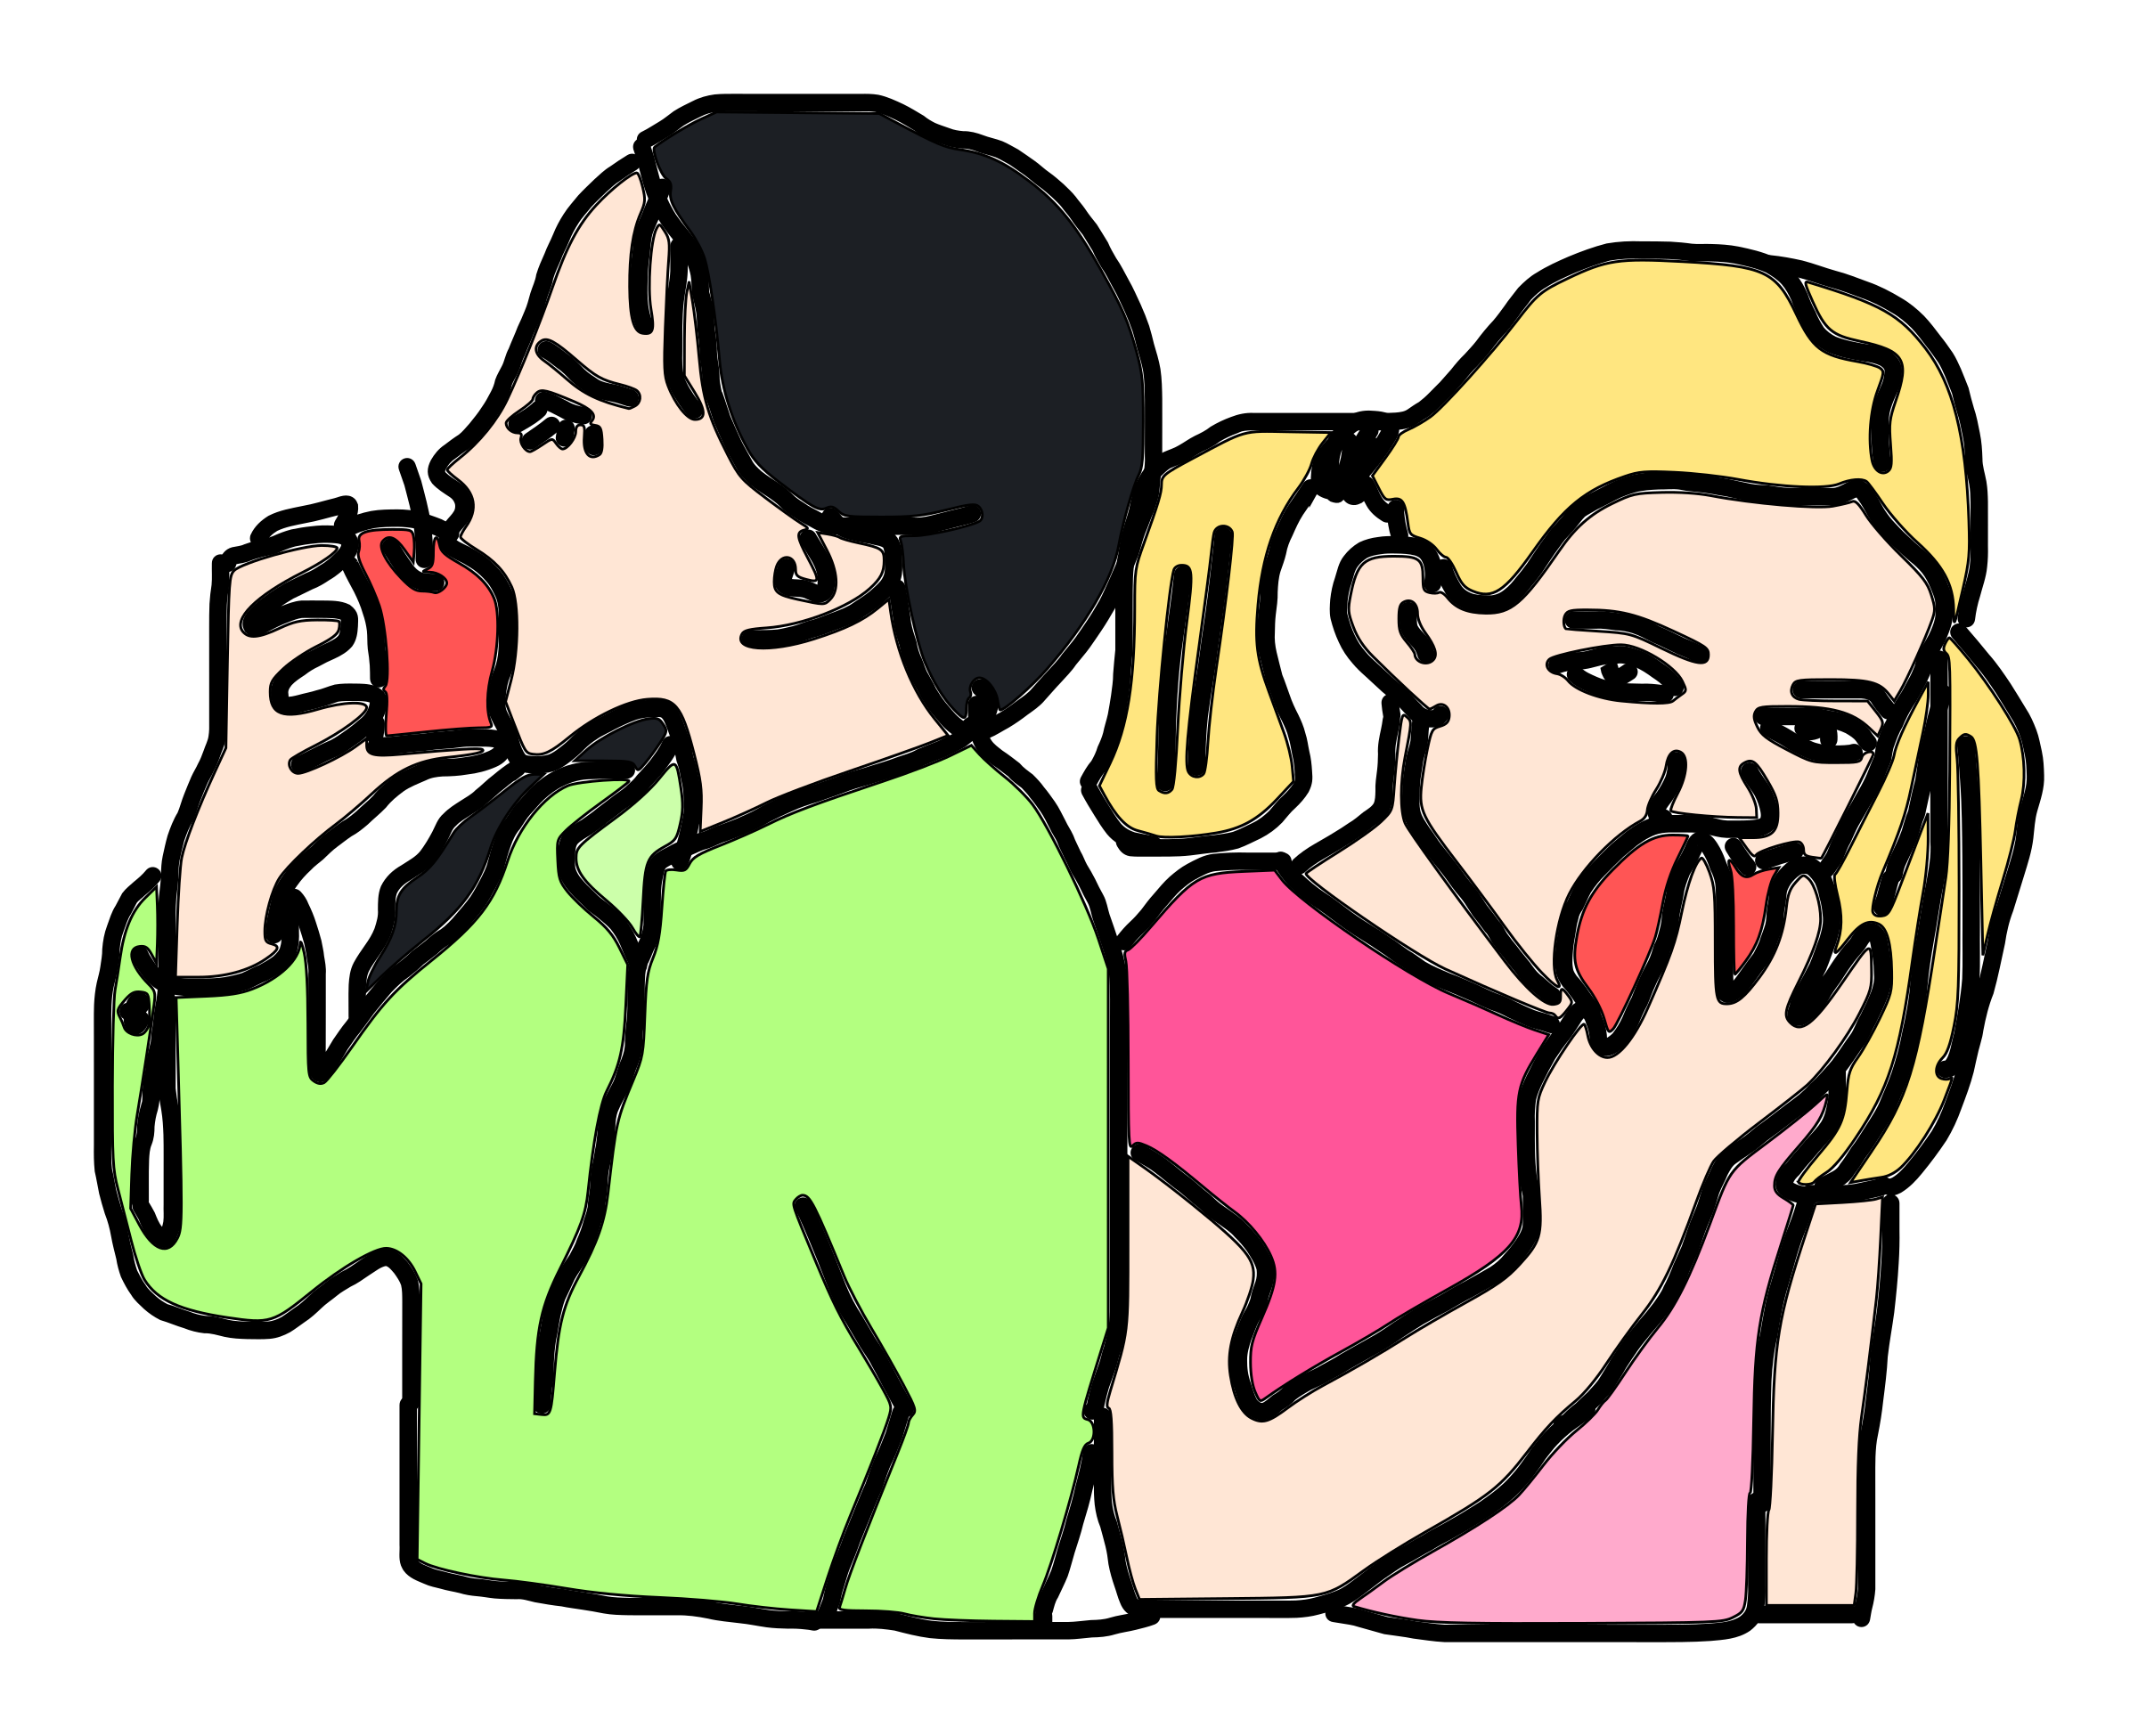 Conversation clipart in depth. Of eating an apple